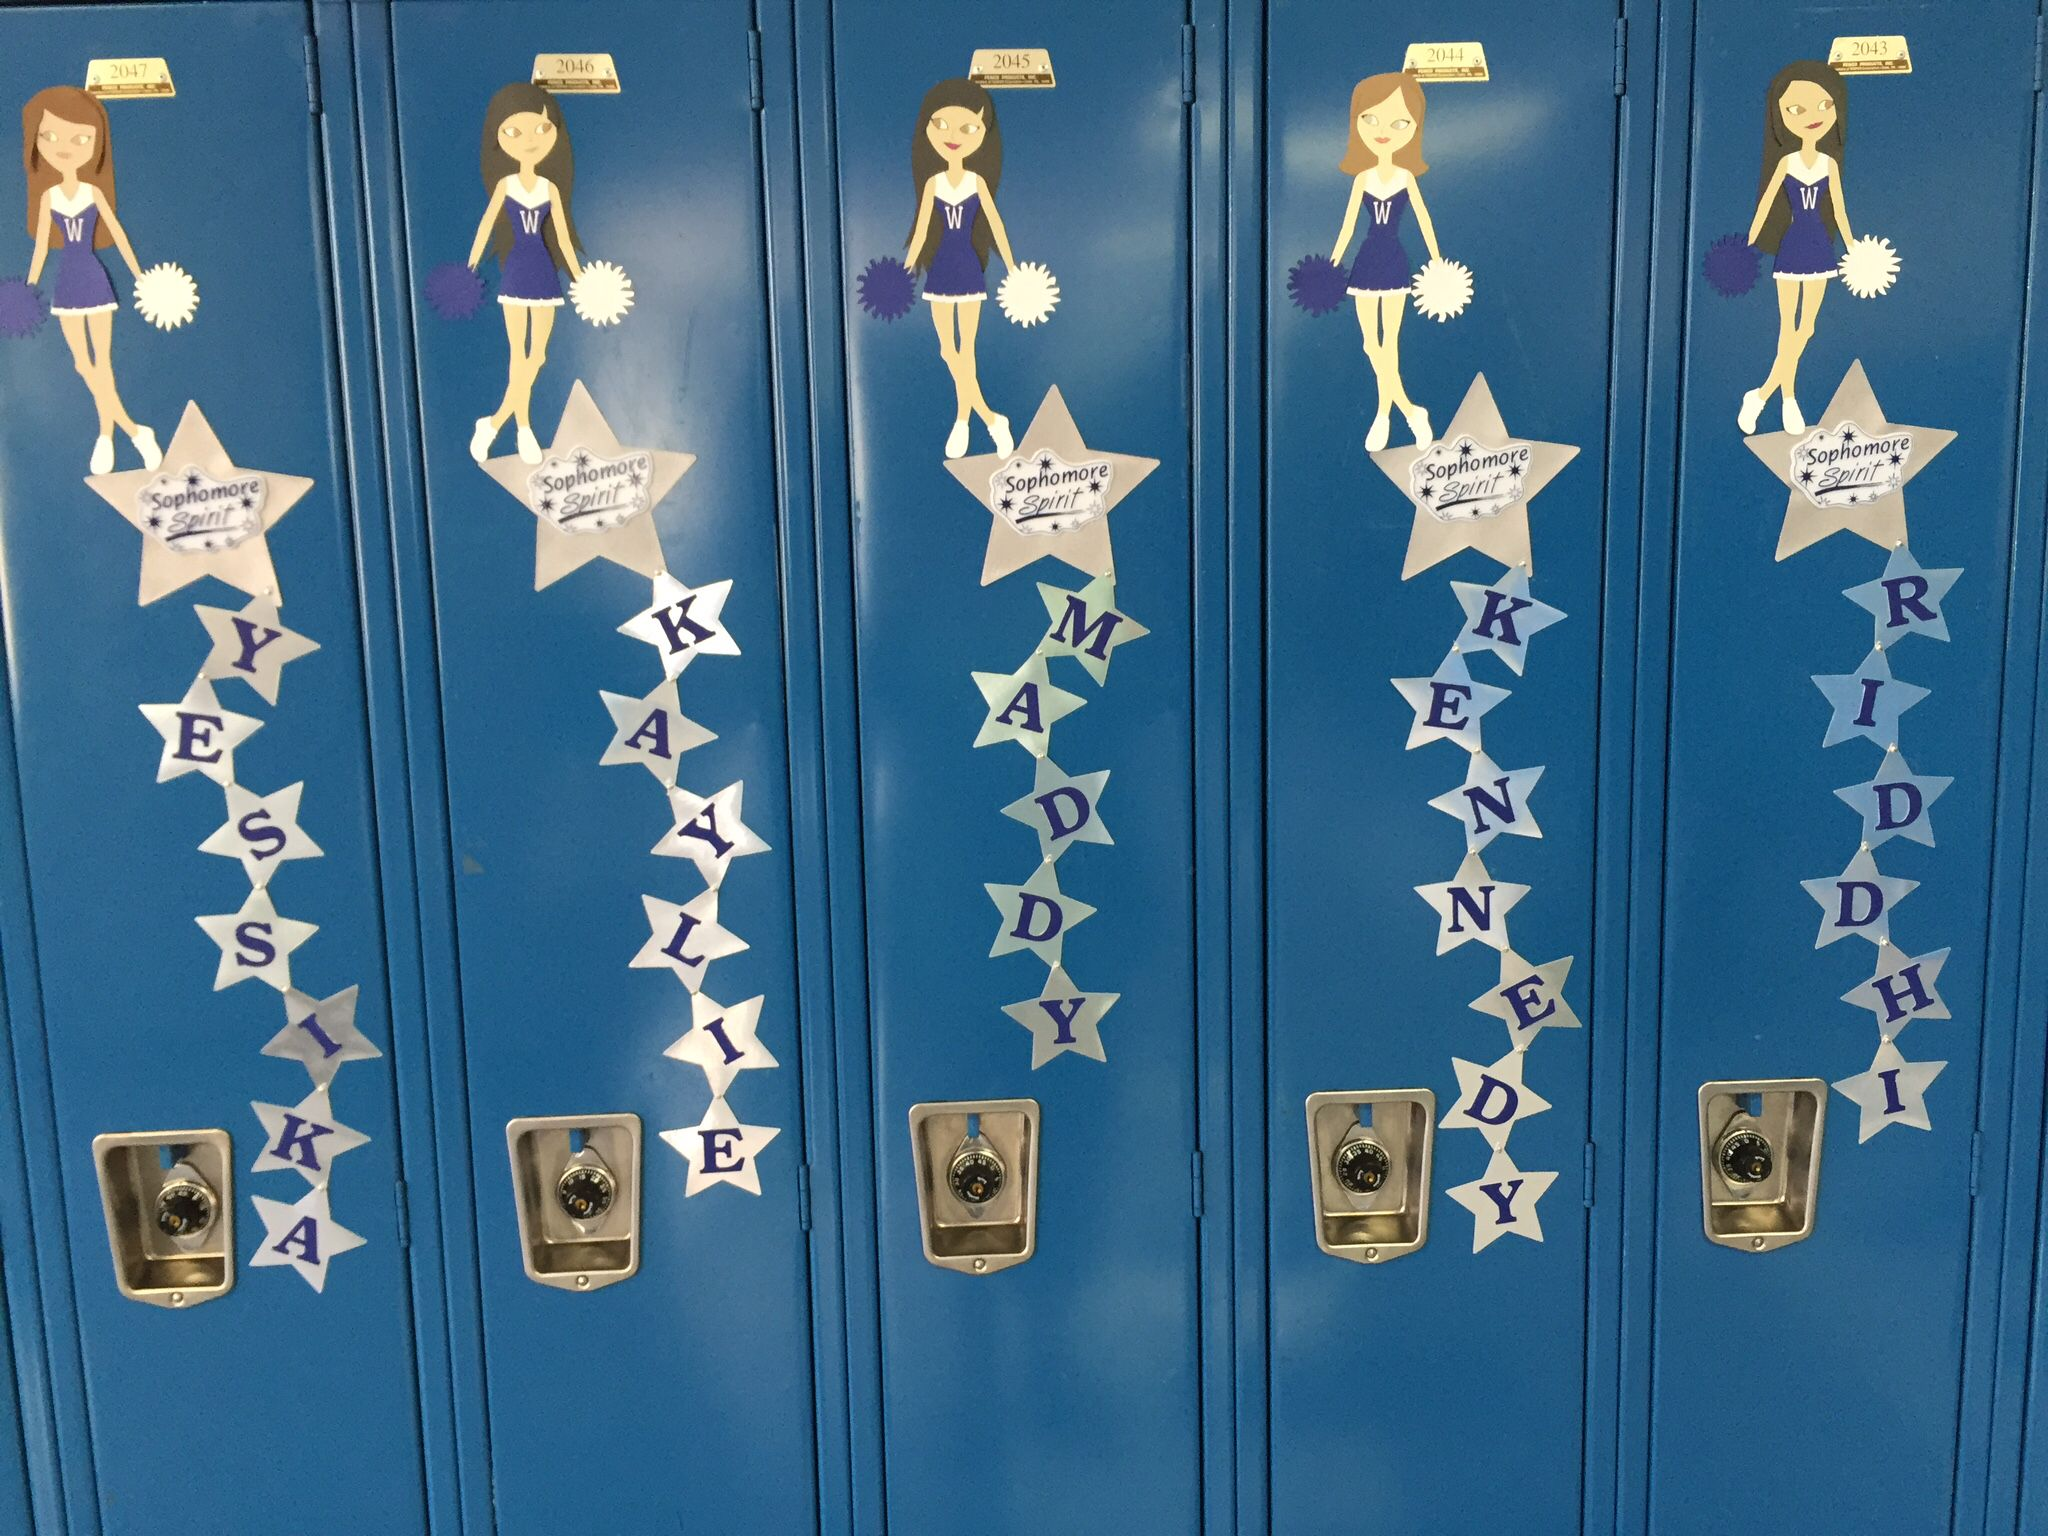 Cheerleading Locker Decorations. Cheer locker decorations made using Cricut Explore Air and Paper Doll Teen  Scene cartridge